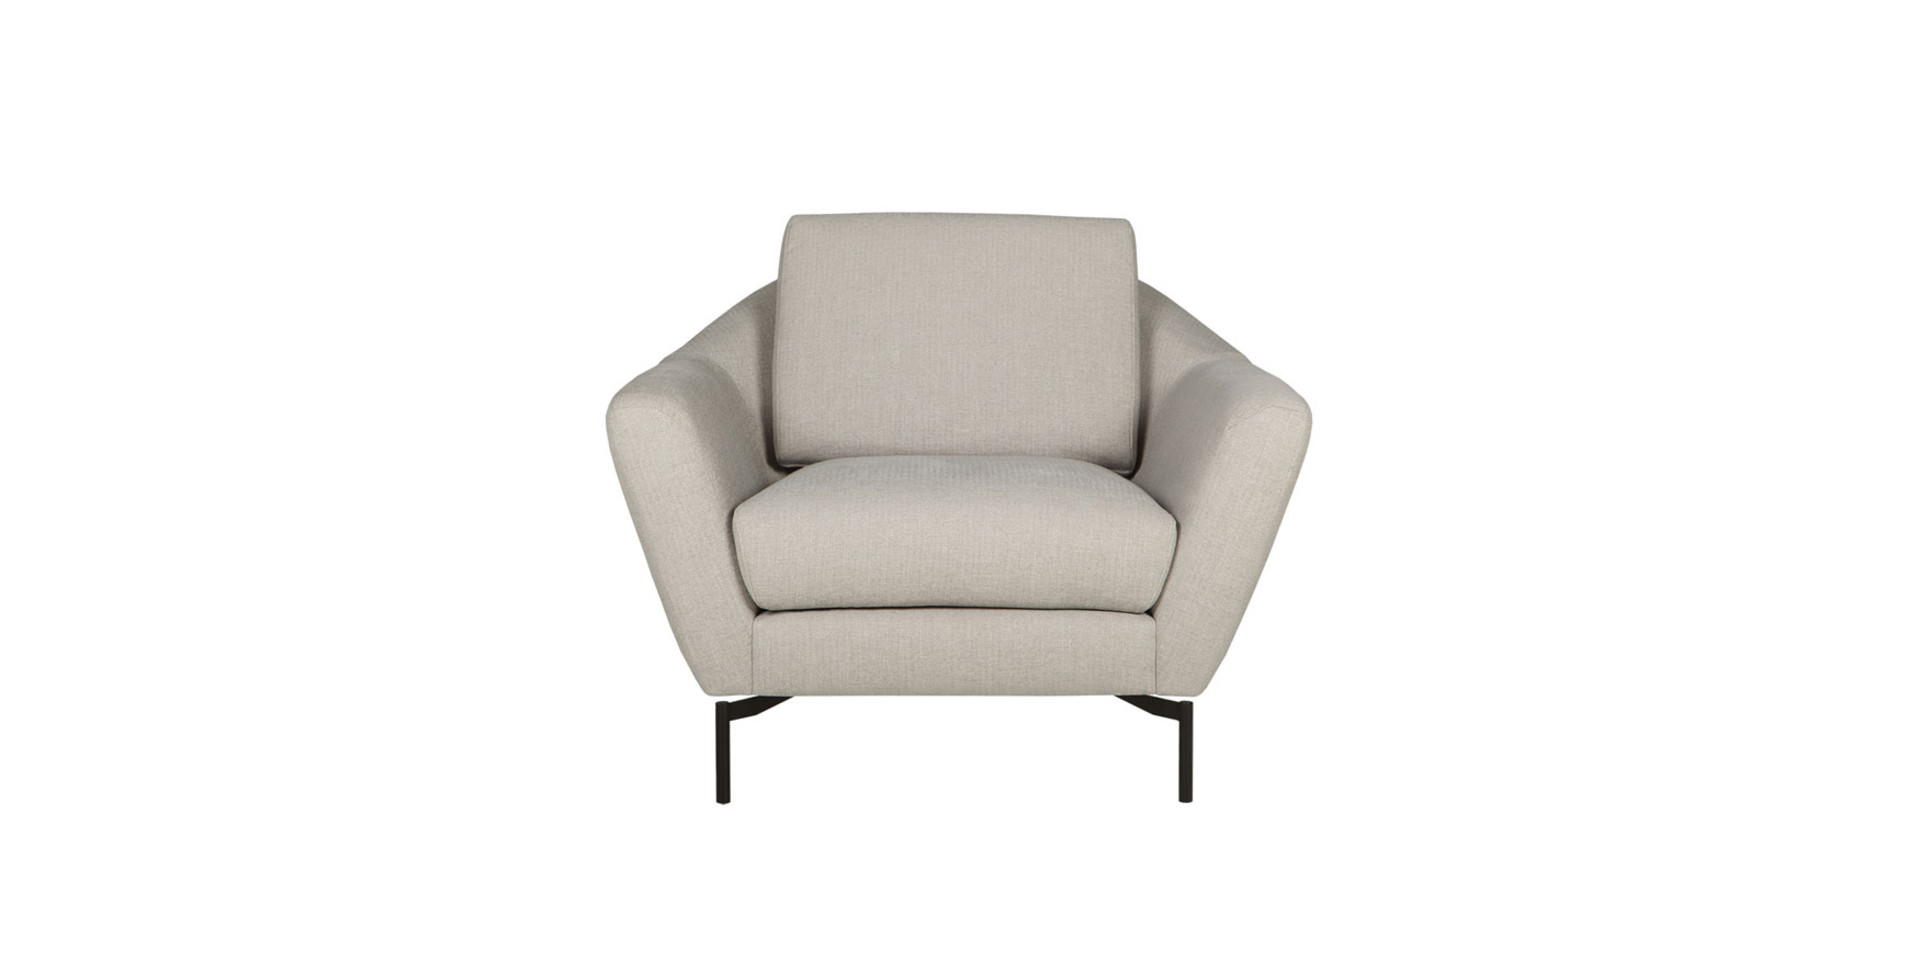 sits-agda-fauteuil-armchair_flossy6_light_grey_1